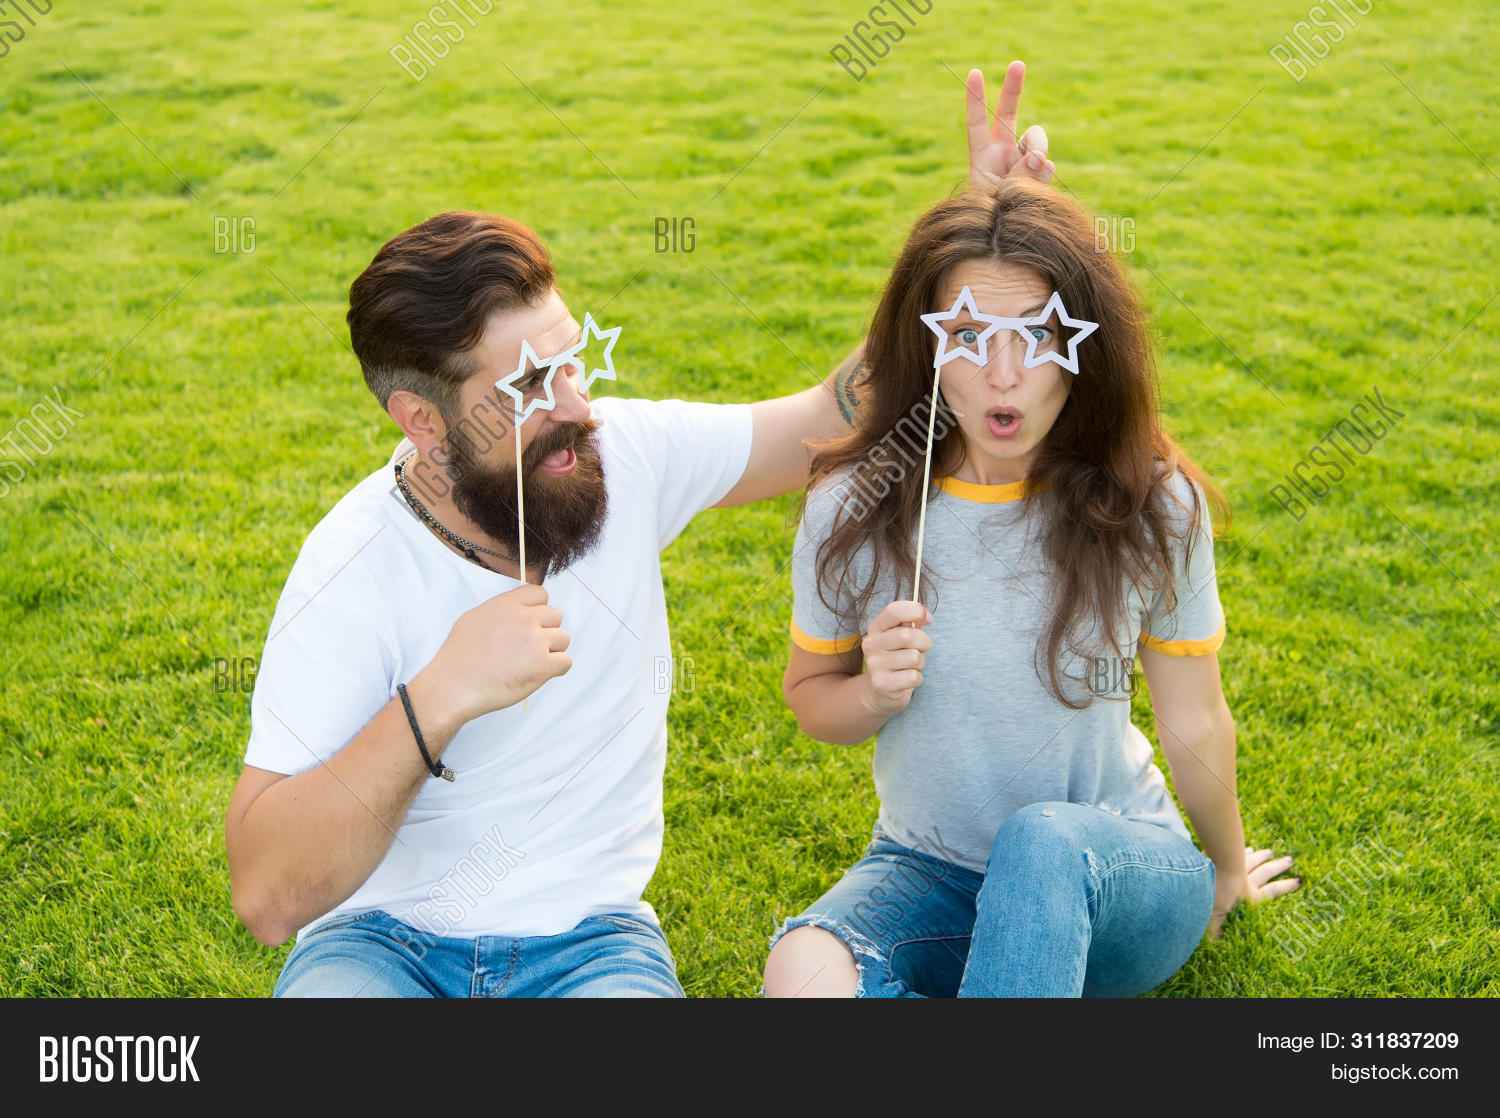 accessories,beard,bearded,boyfriend,brutal,caucasian,couple,crazy,desire,enjoy,enjoying,erotic,fancy,freedom,fun,funny,girl,girlfriend,glasses,grass,green,guy,hipster,insane,leisure,look,love,lovers,lunatic,mad,man,party,playful,pleasure,props,relationship,romantic,sexi,sexy,trust,unshaven,woman